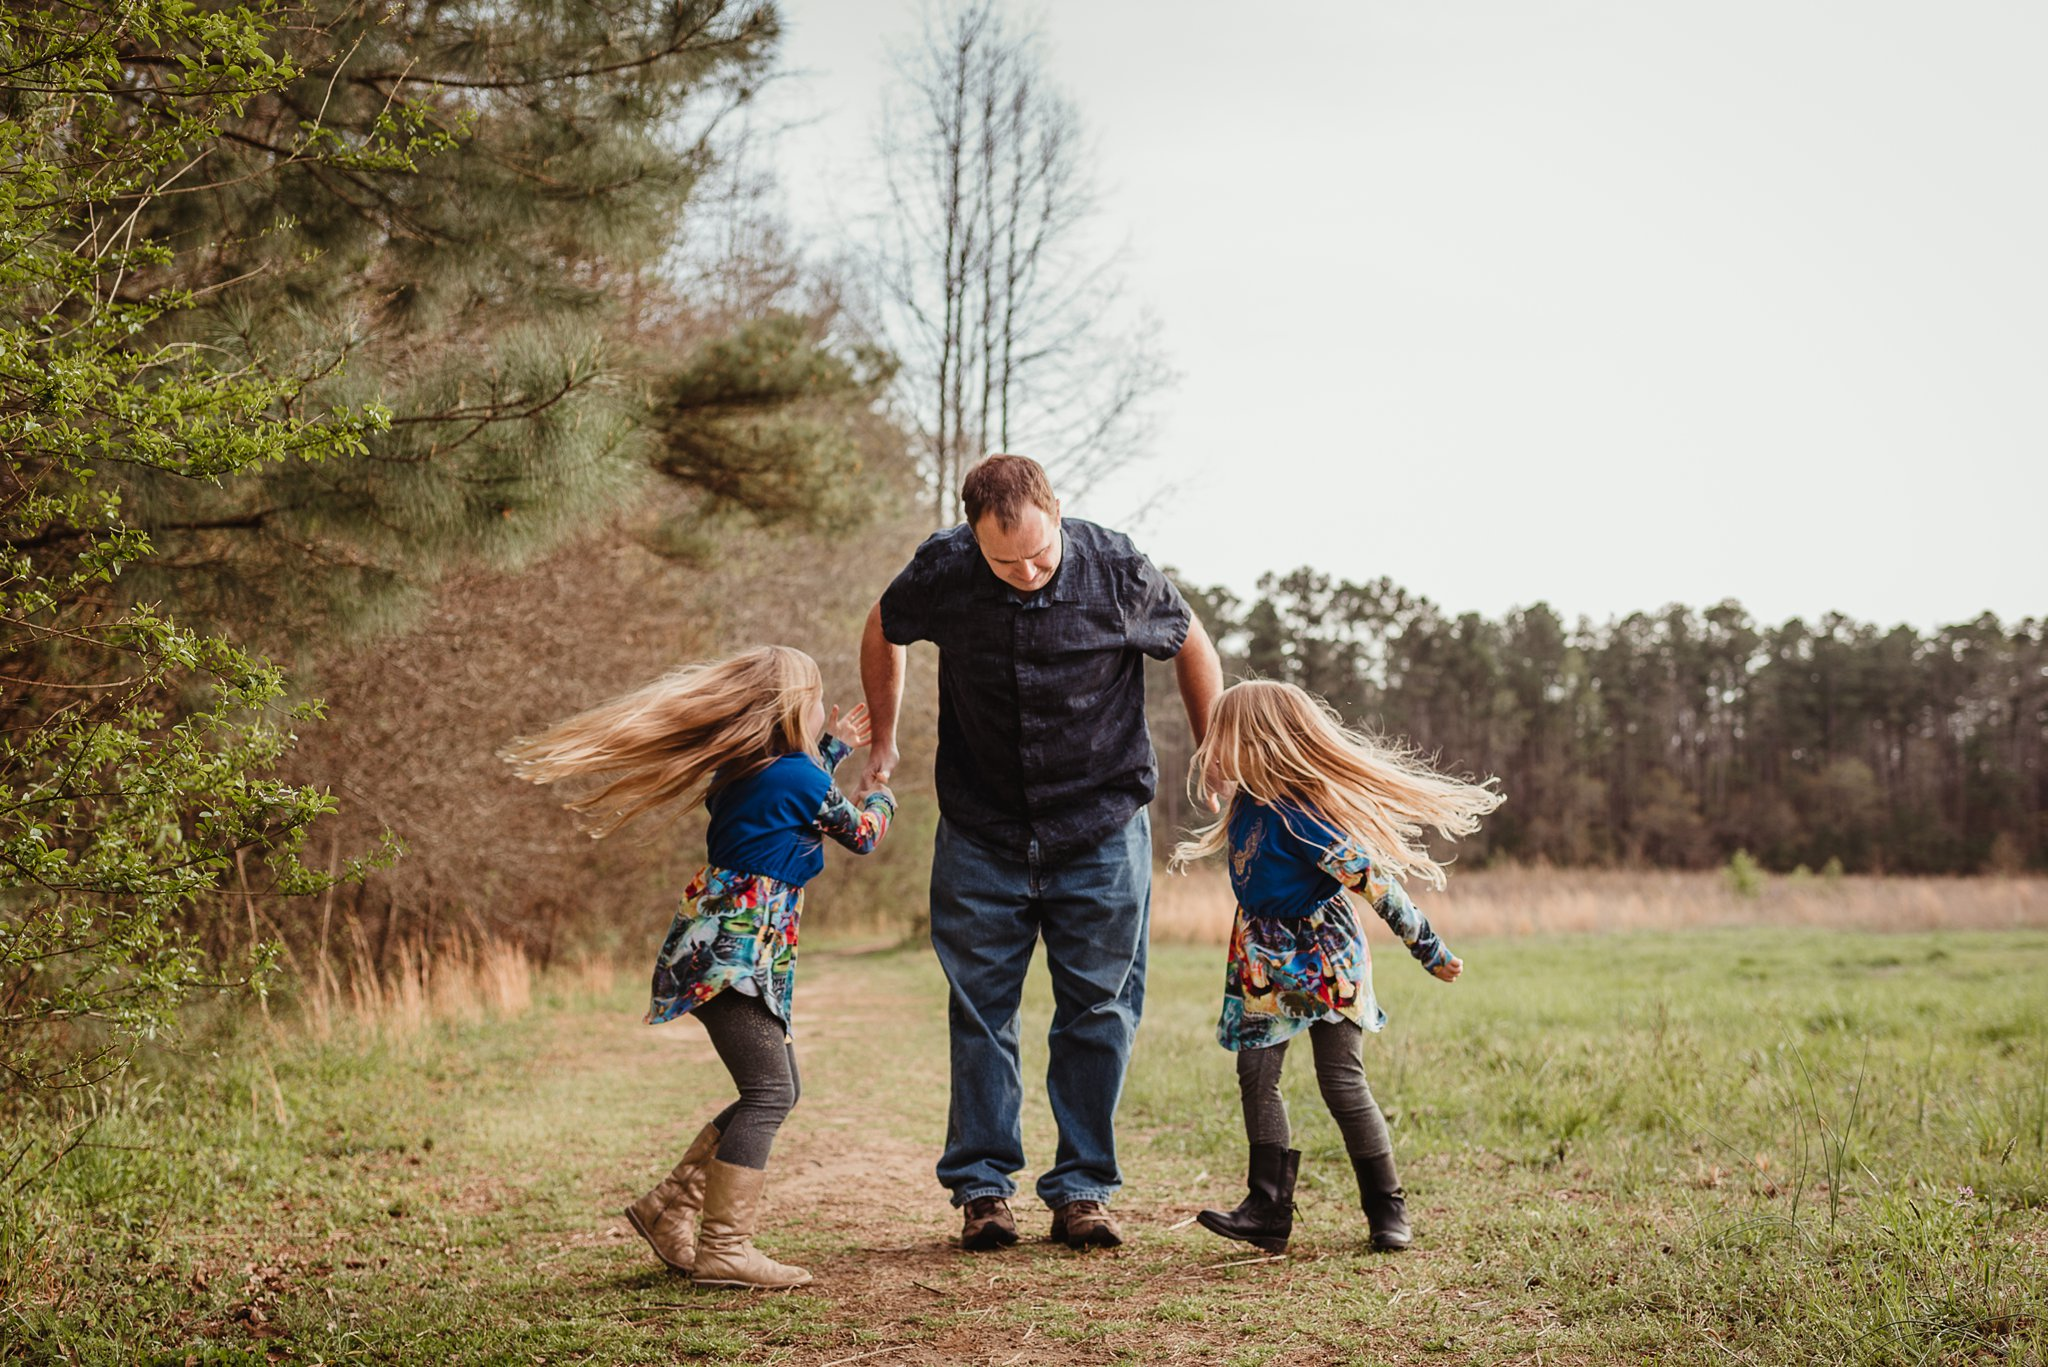 The daughters dance with their dad during their family photo session with Rose Trail Images in Wake Forest, North Carolina.